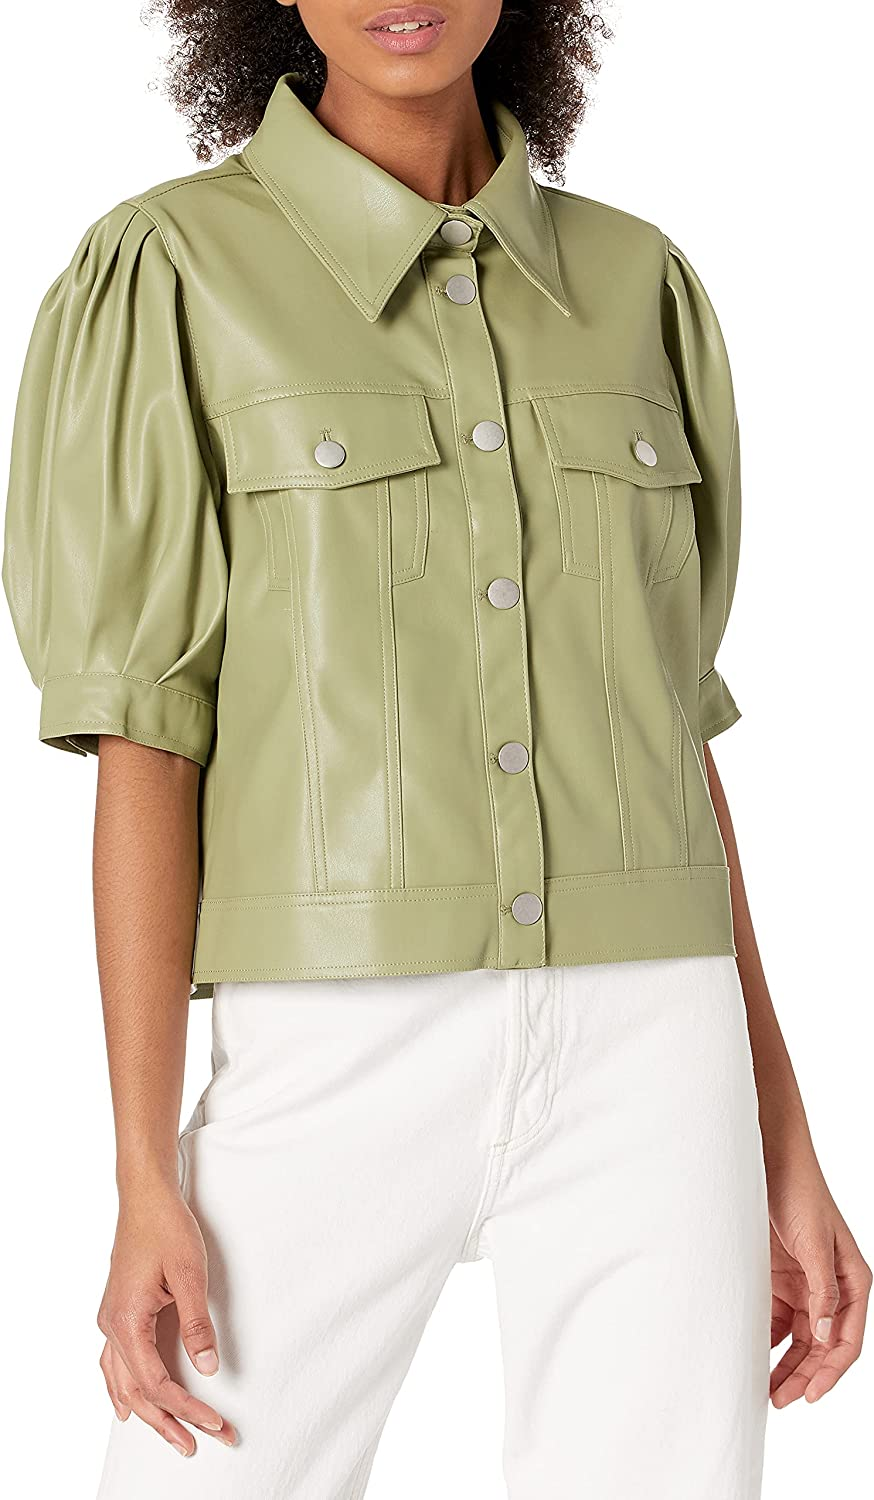 KENDALL + Sale SALE% OFF San Jose Mall KYLIE Women's Puff Button Top Sleeve Down